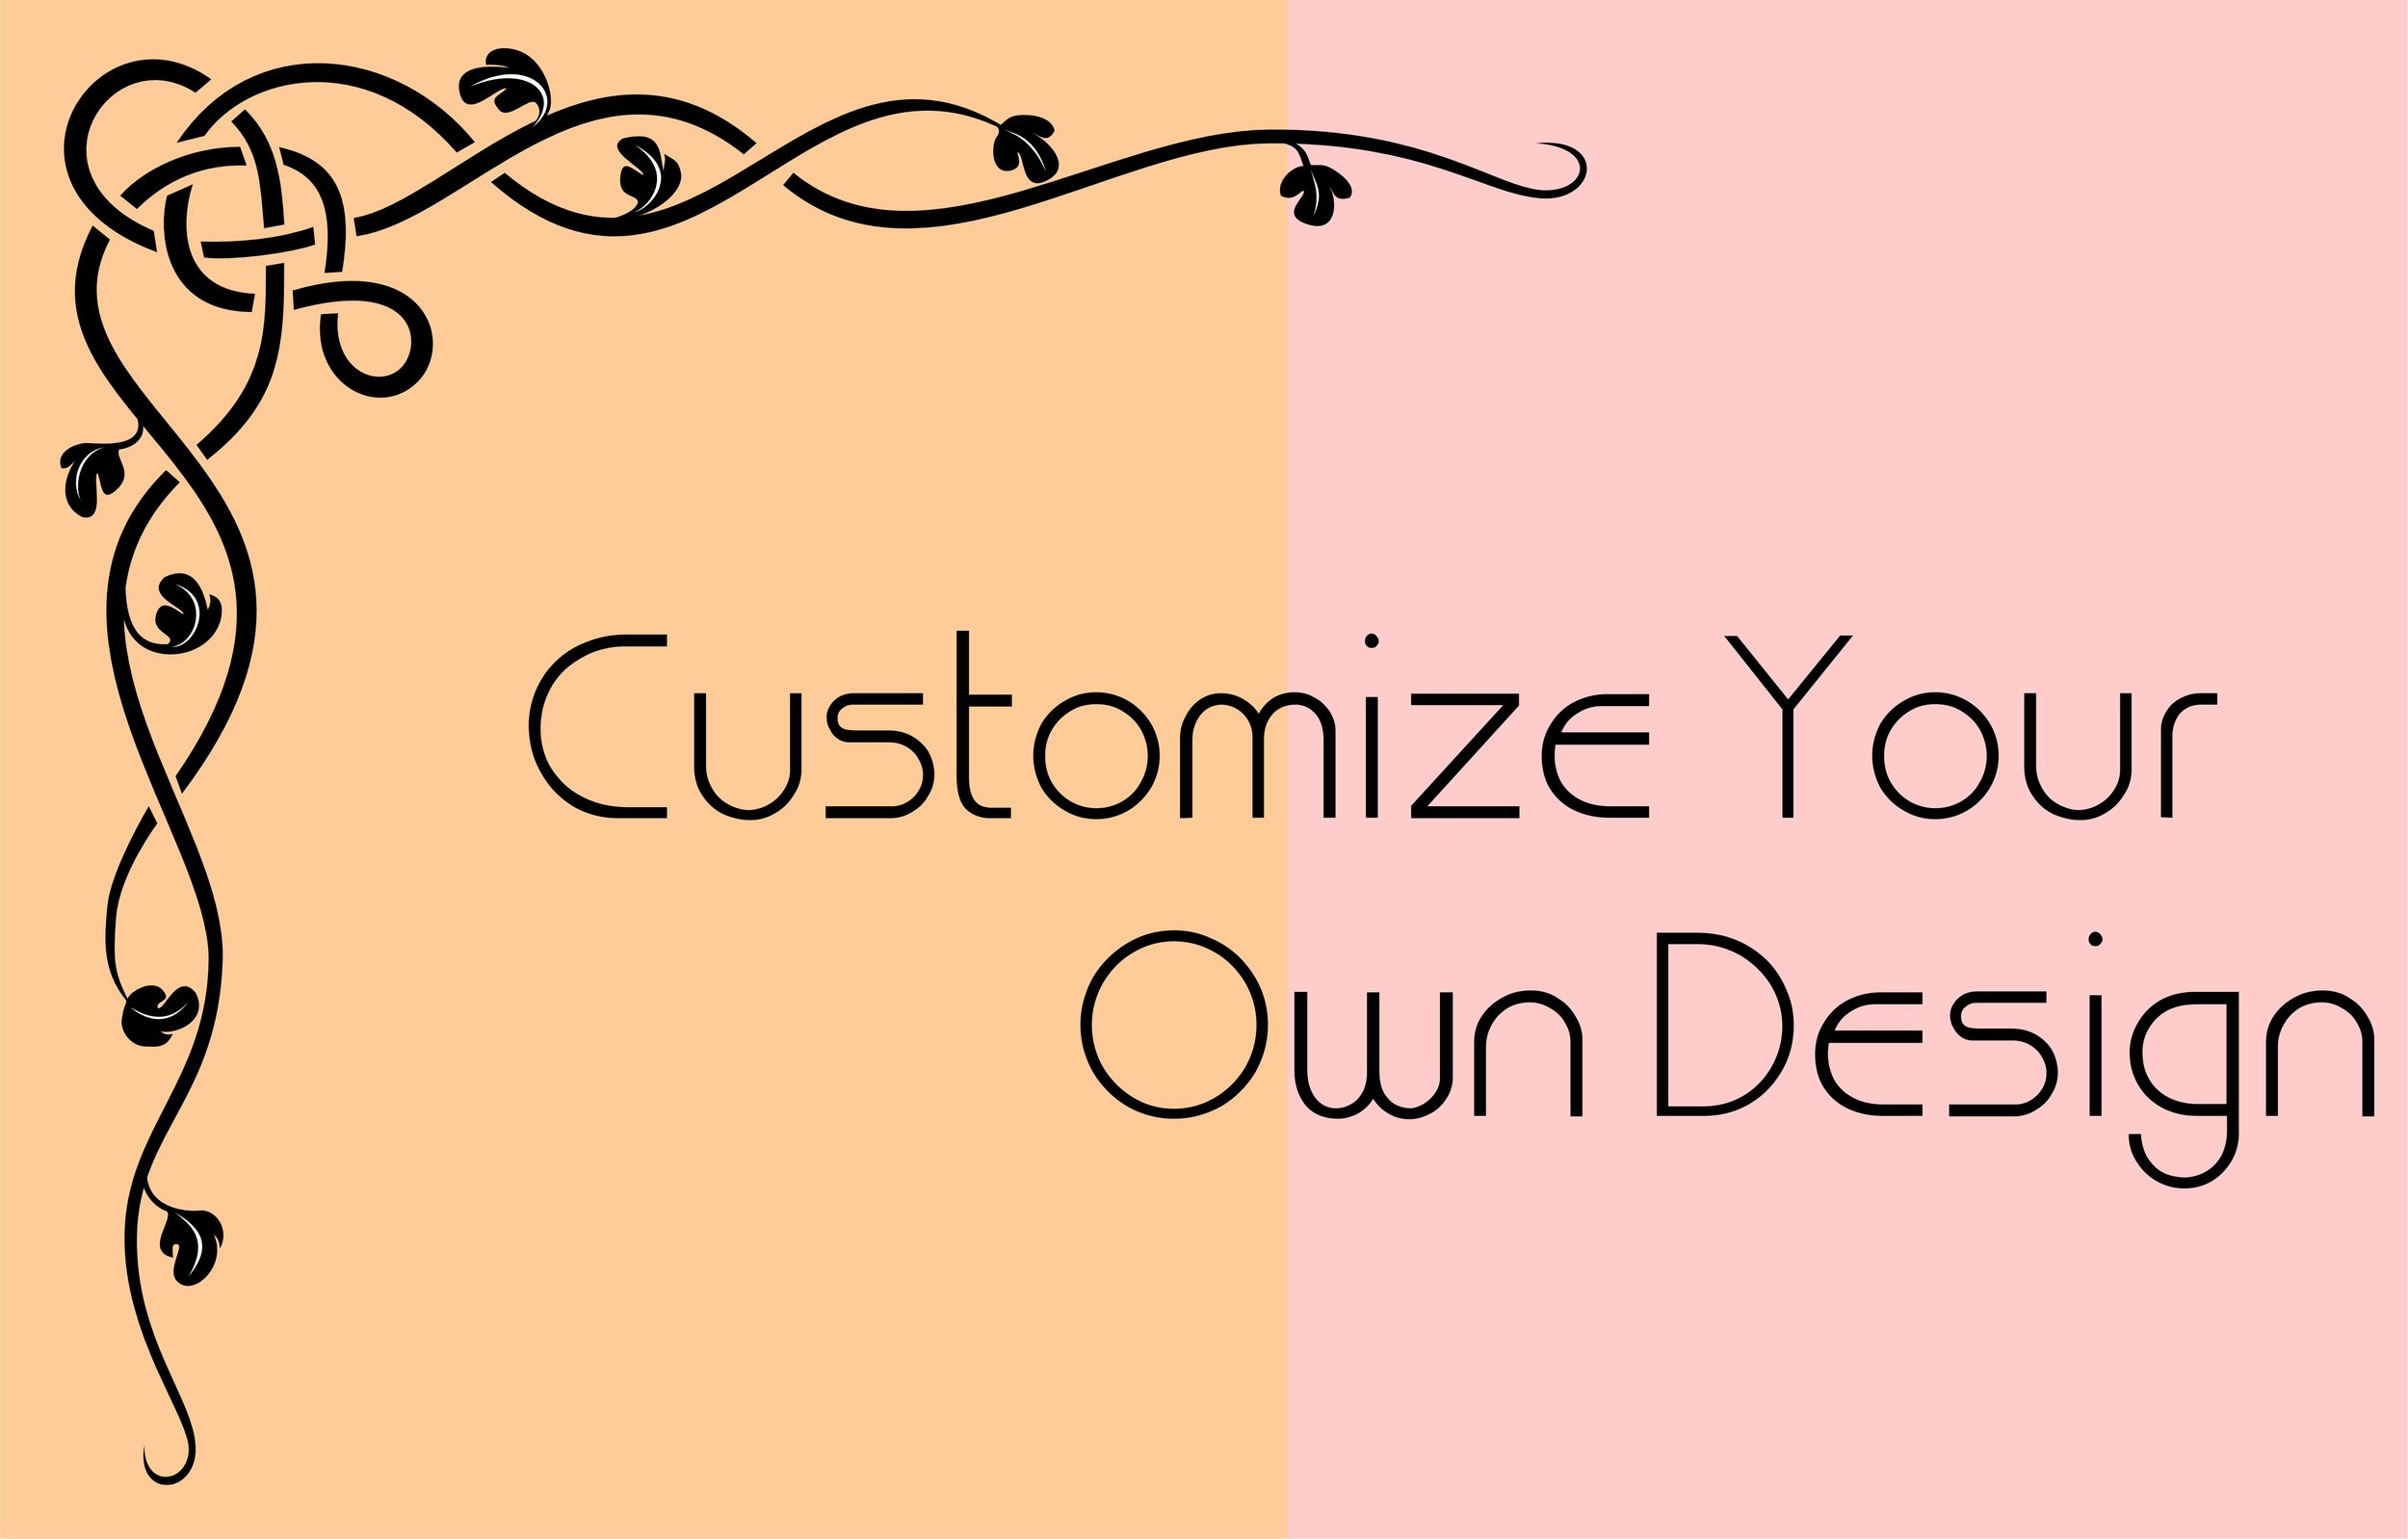 Customize Your Design Card.jpg